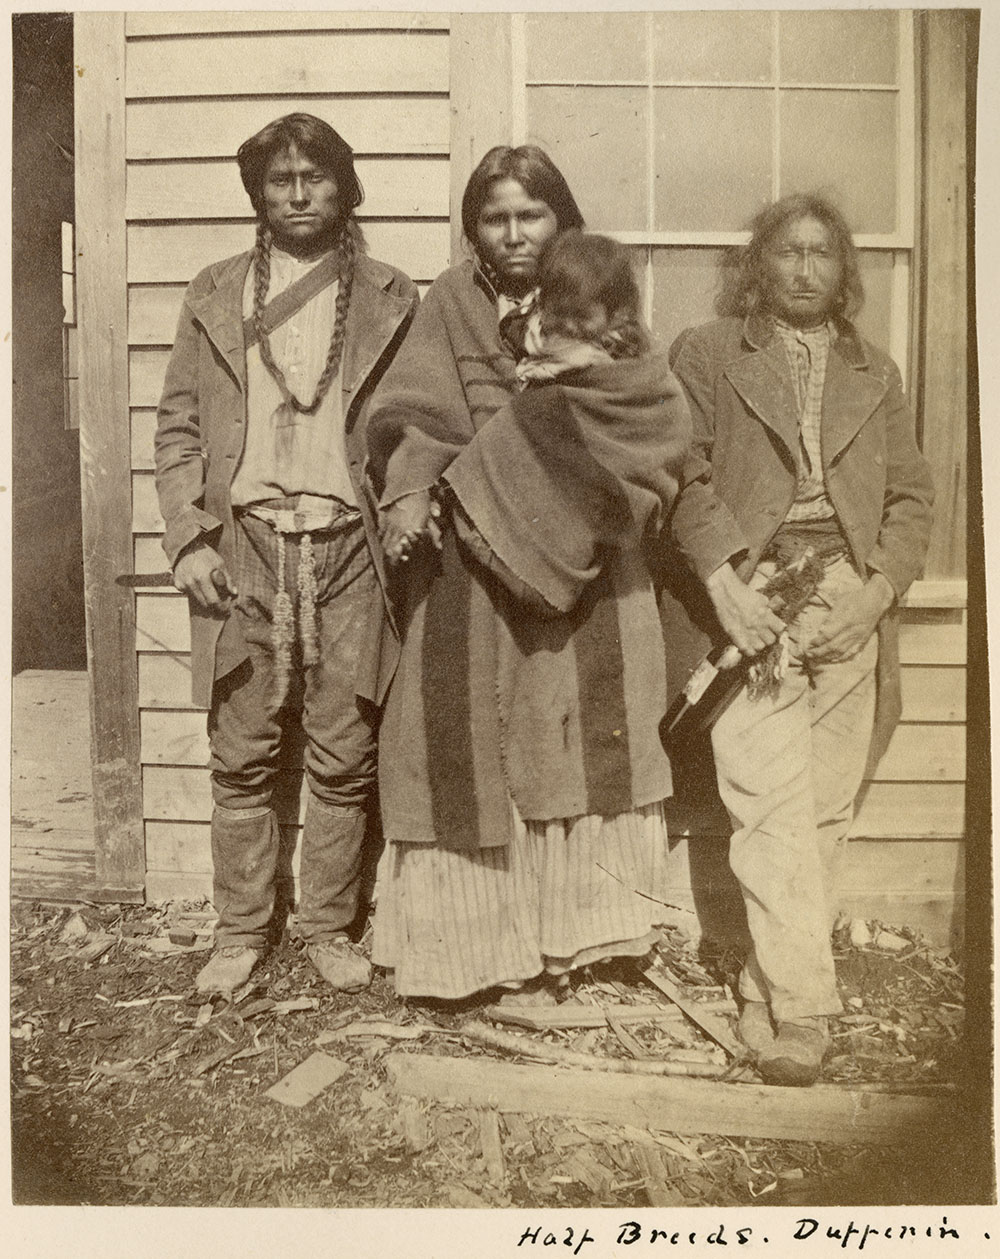 Black and white photograph of two men and a woman holding a child posed in front of a wooden building.